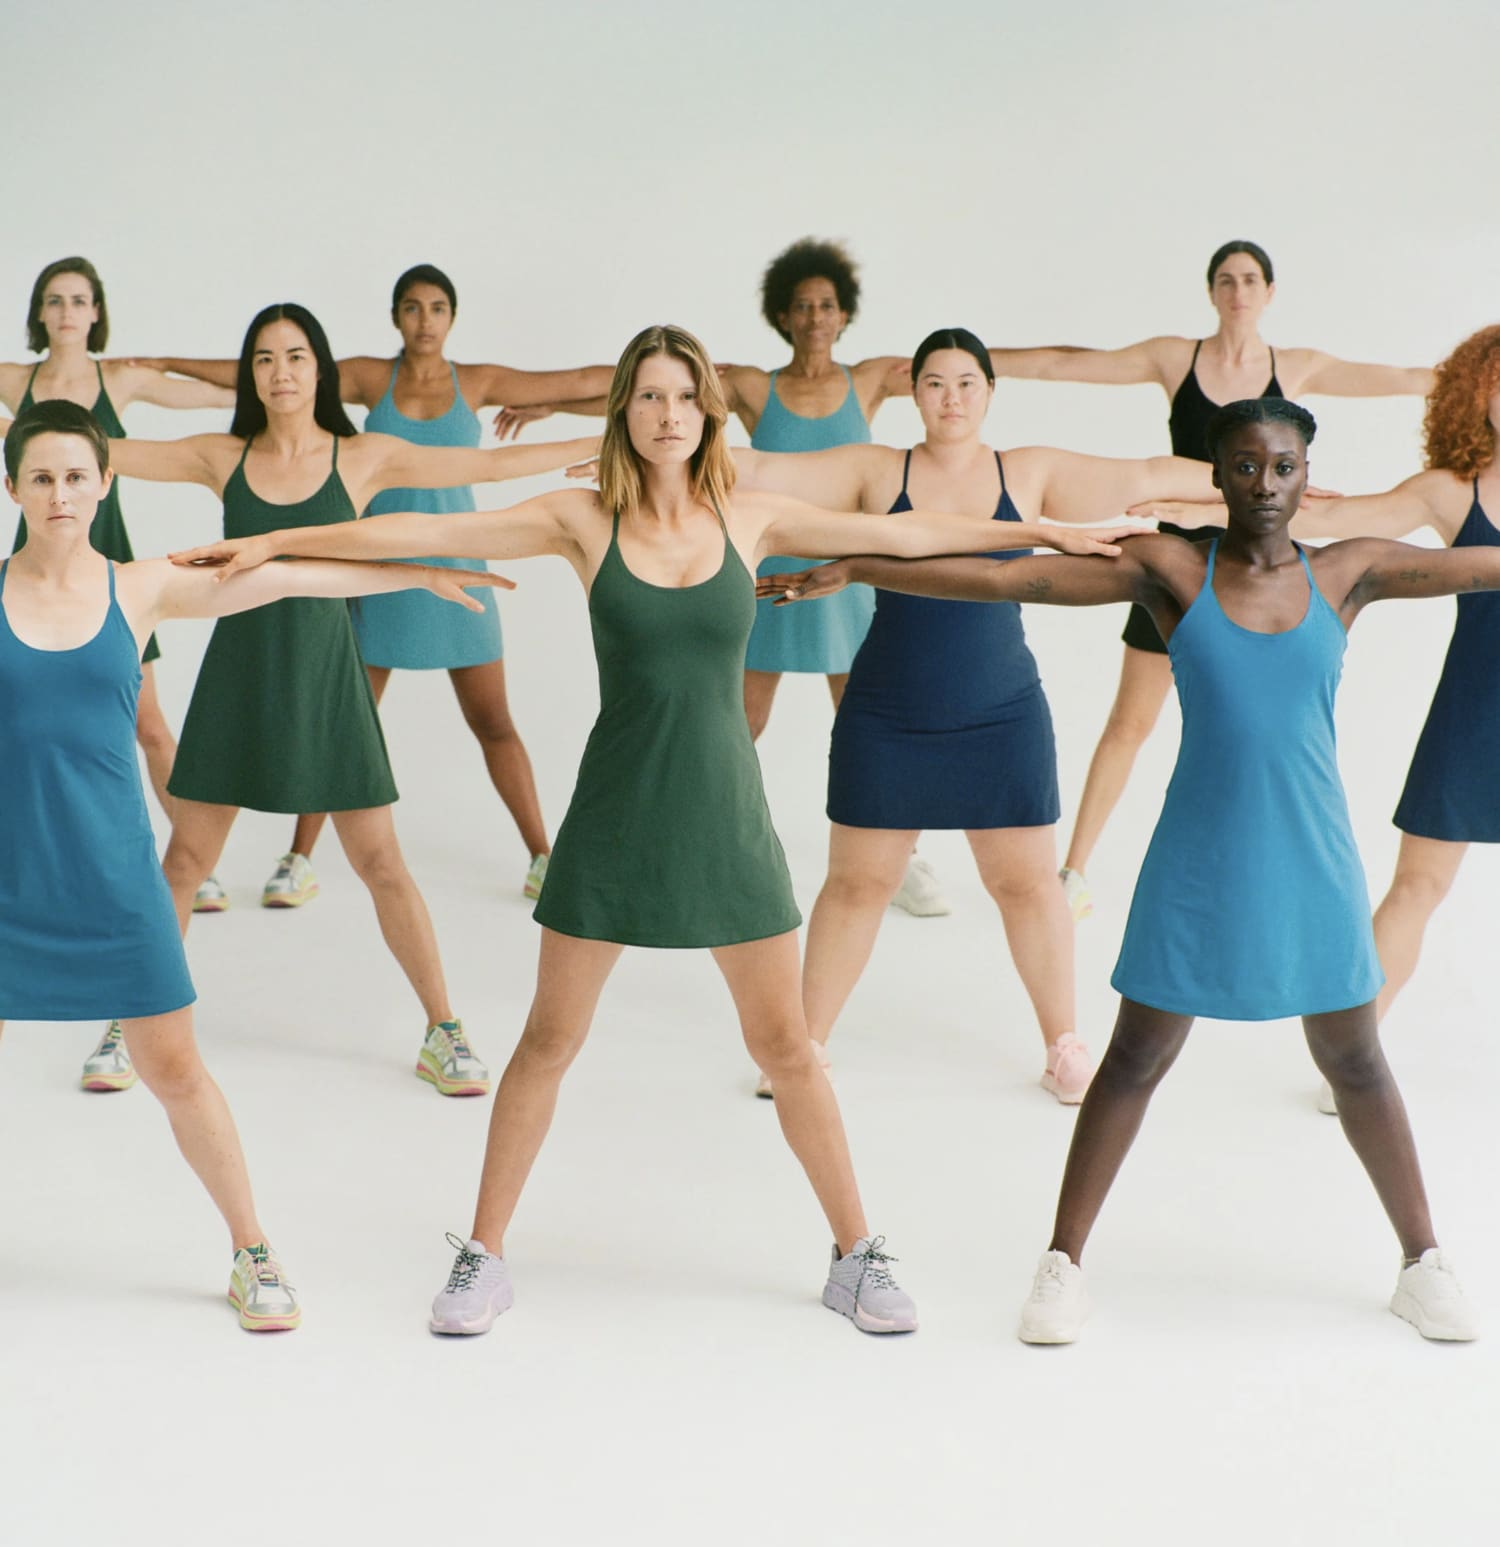 The Exercise Dress Campaign